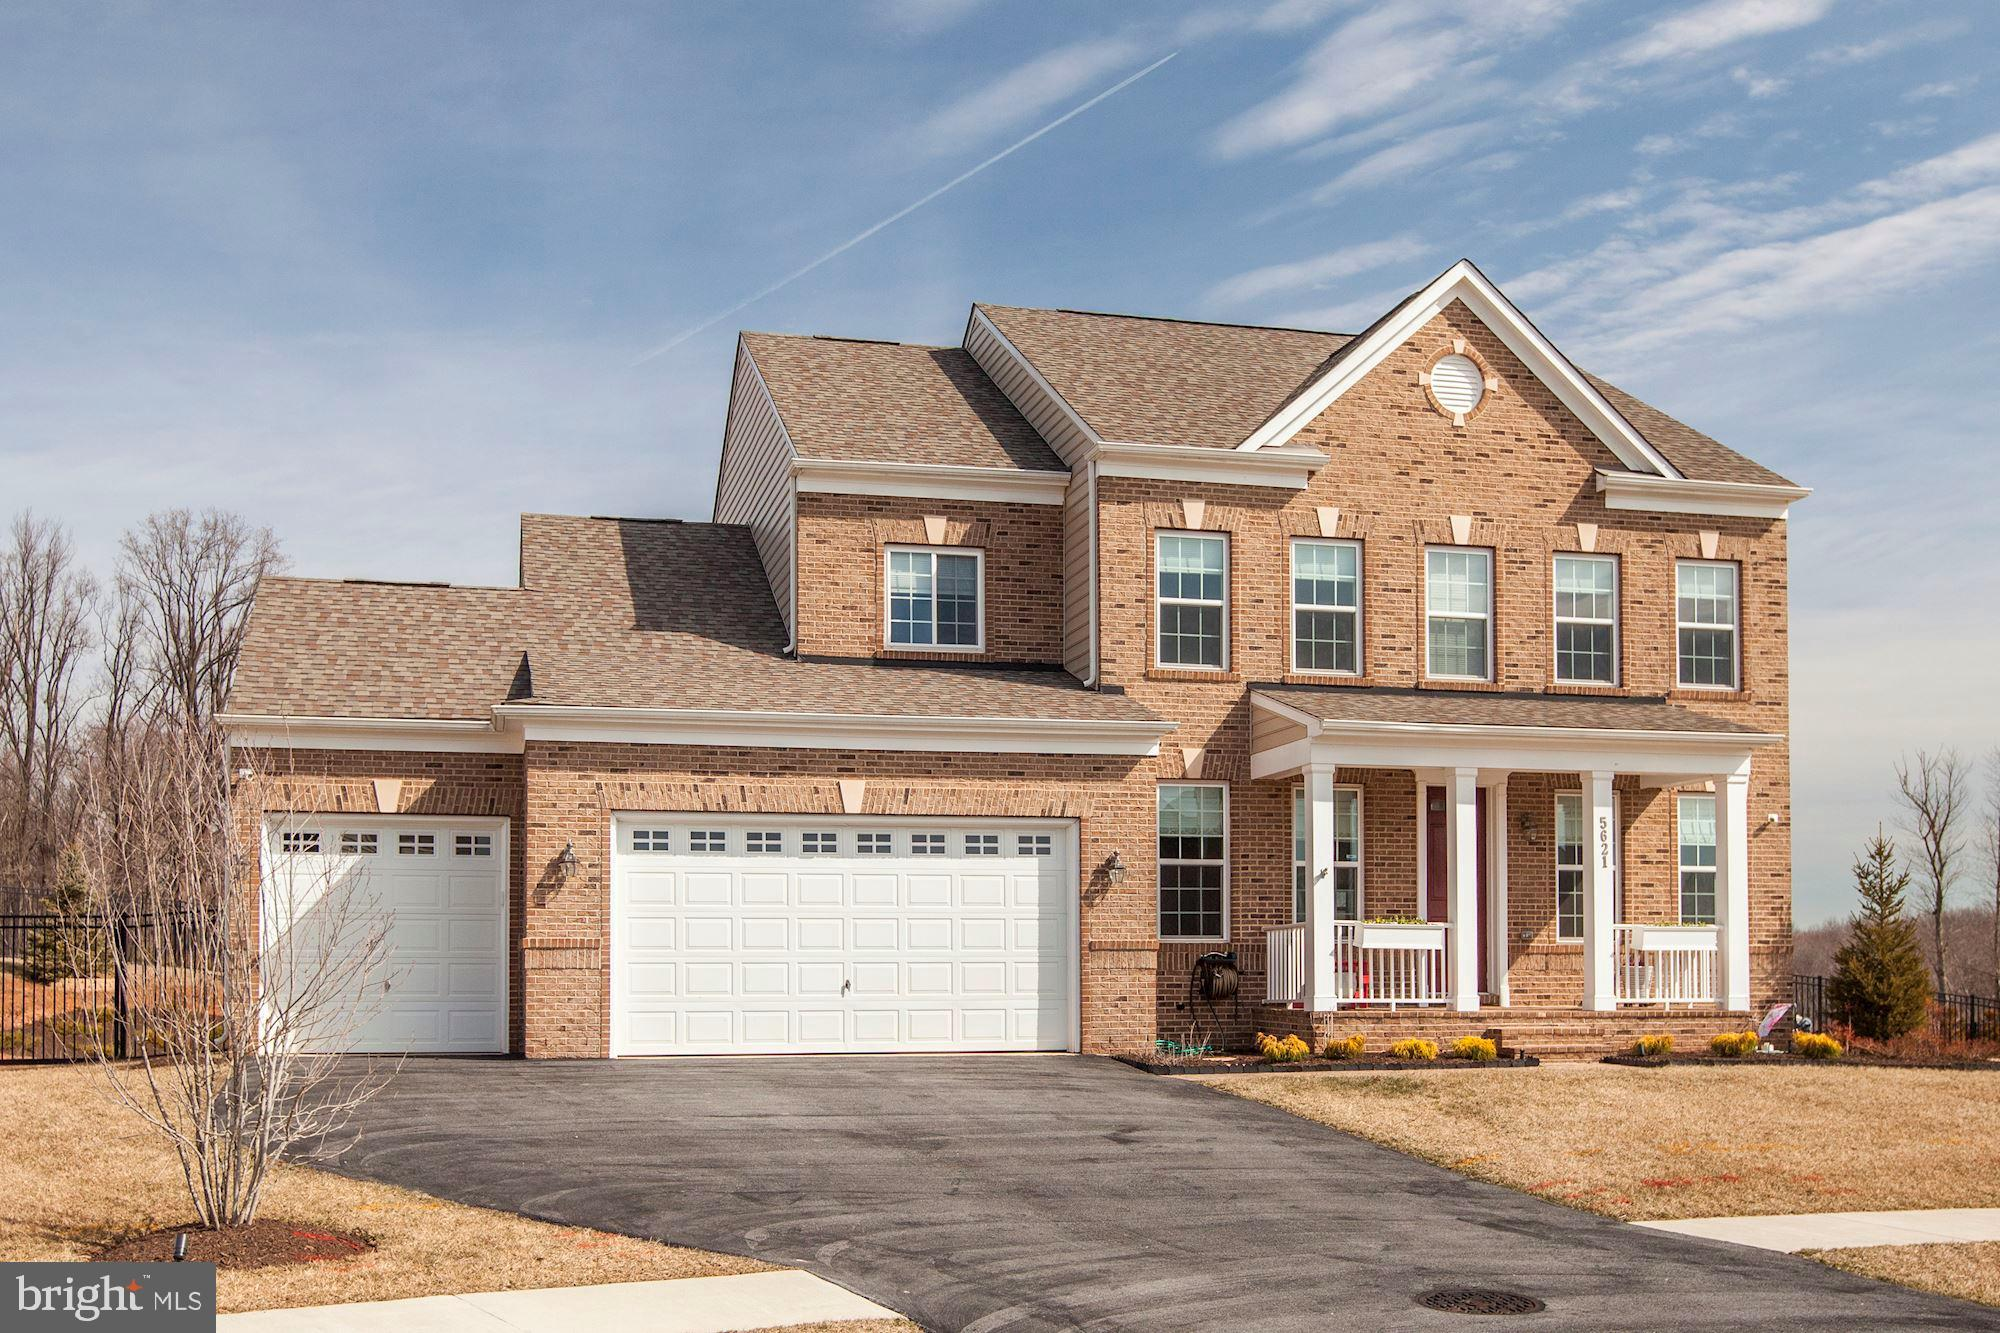 5621 HEARTWOOD CIRCLE, ROCKVILLE, MD 20855